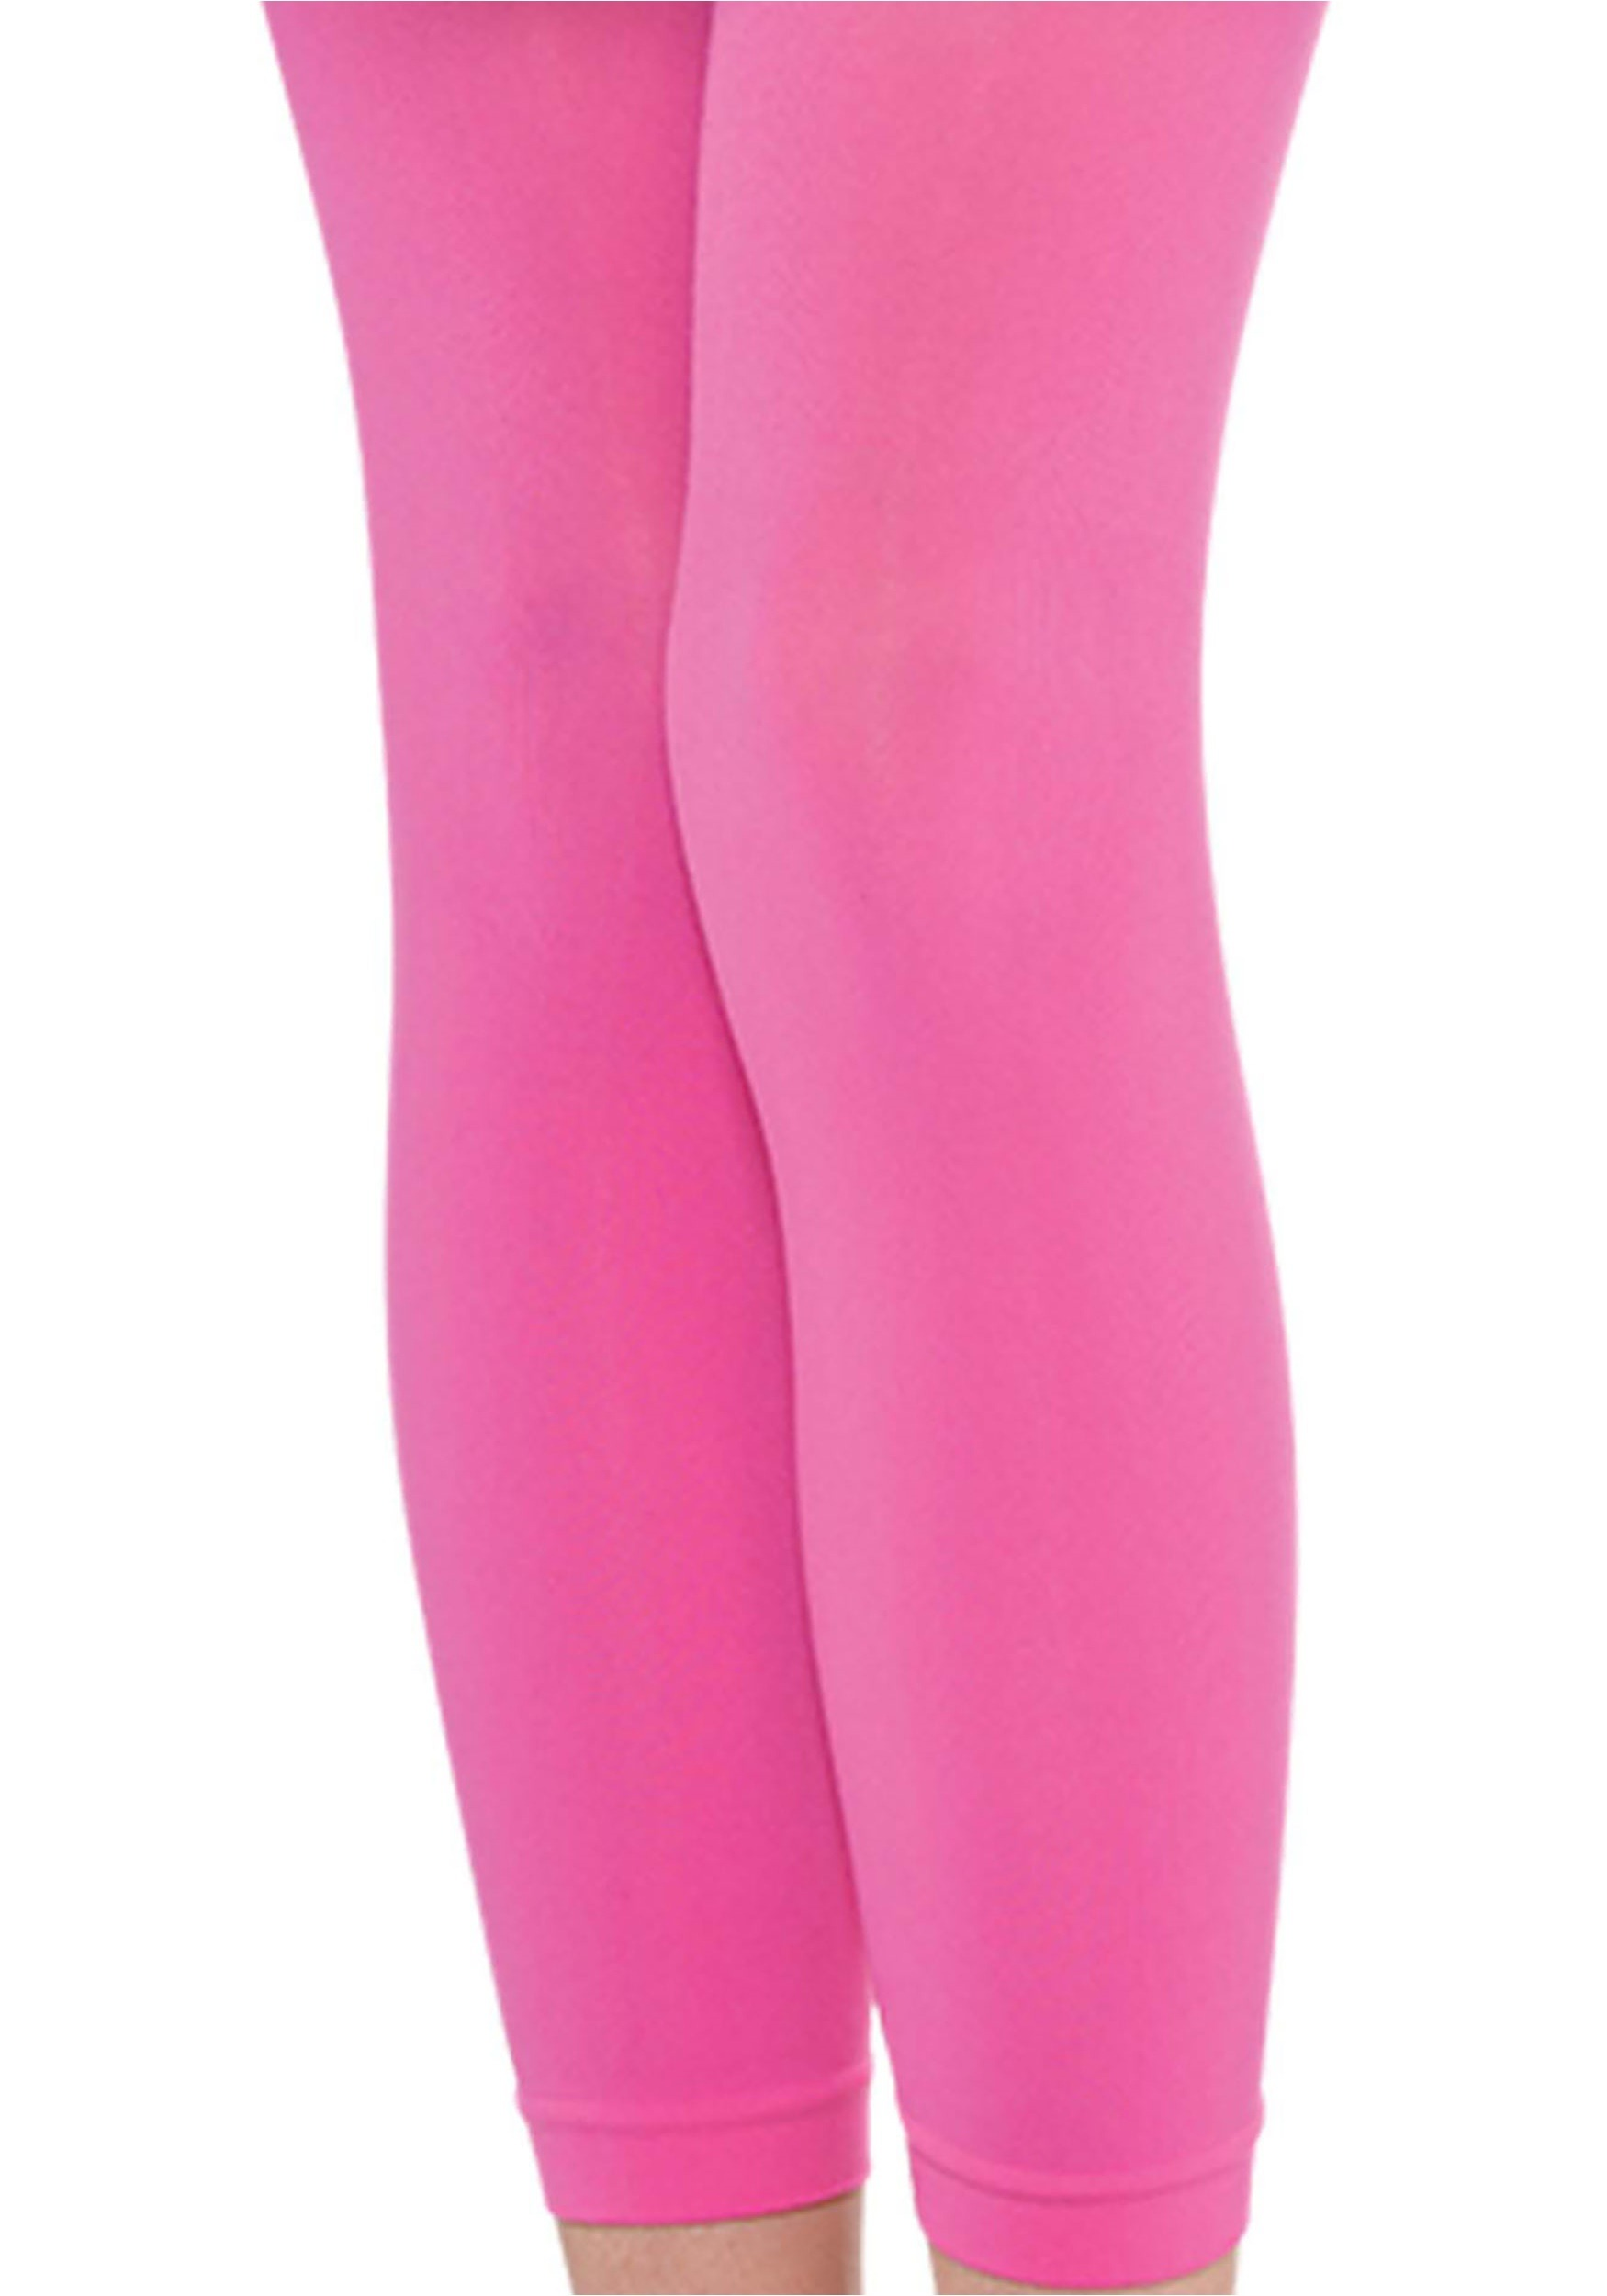 Pink_Child_Footless_Tights